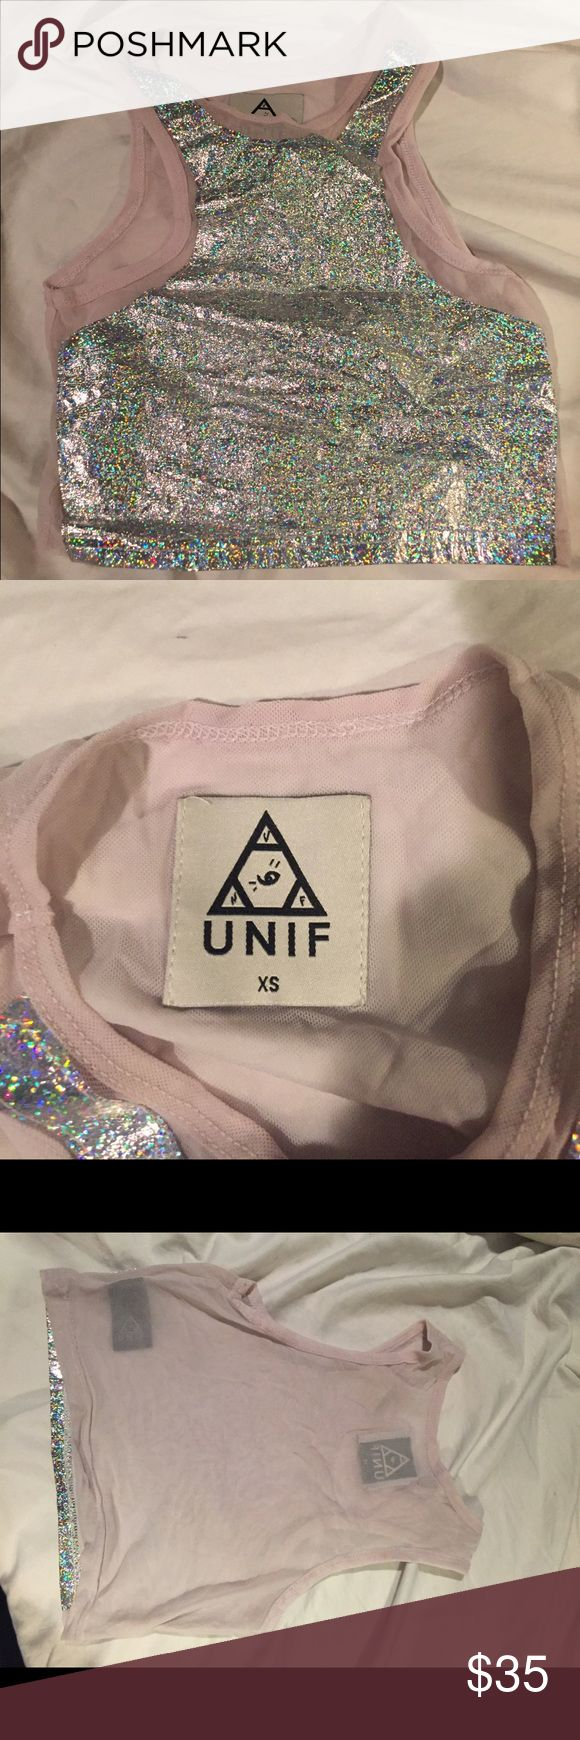 UNIF metallic crop !!!!! This crop top is everything!! So fun for a rave, or just a fun outing! Worn but in great condition!! UNIF Tops Crop Tops